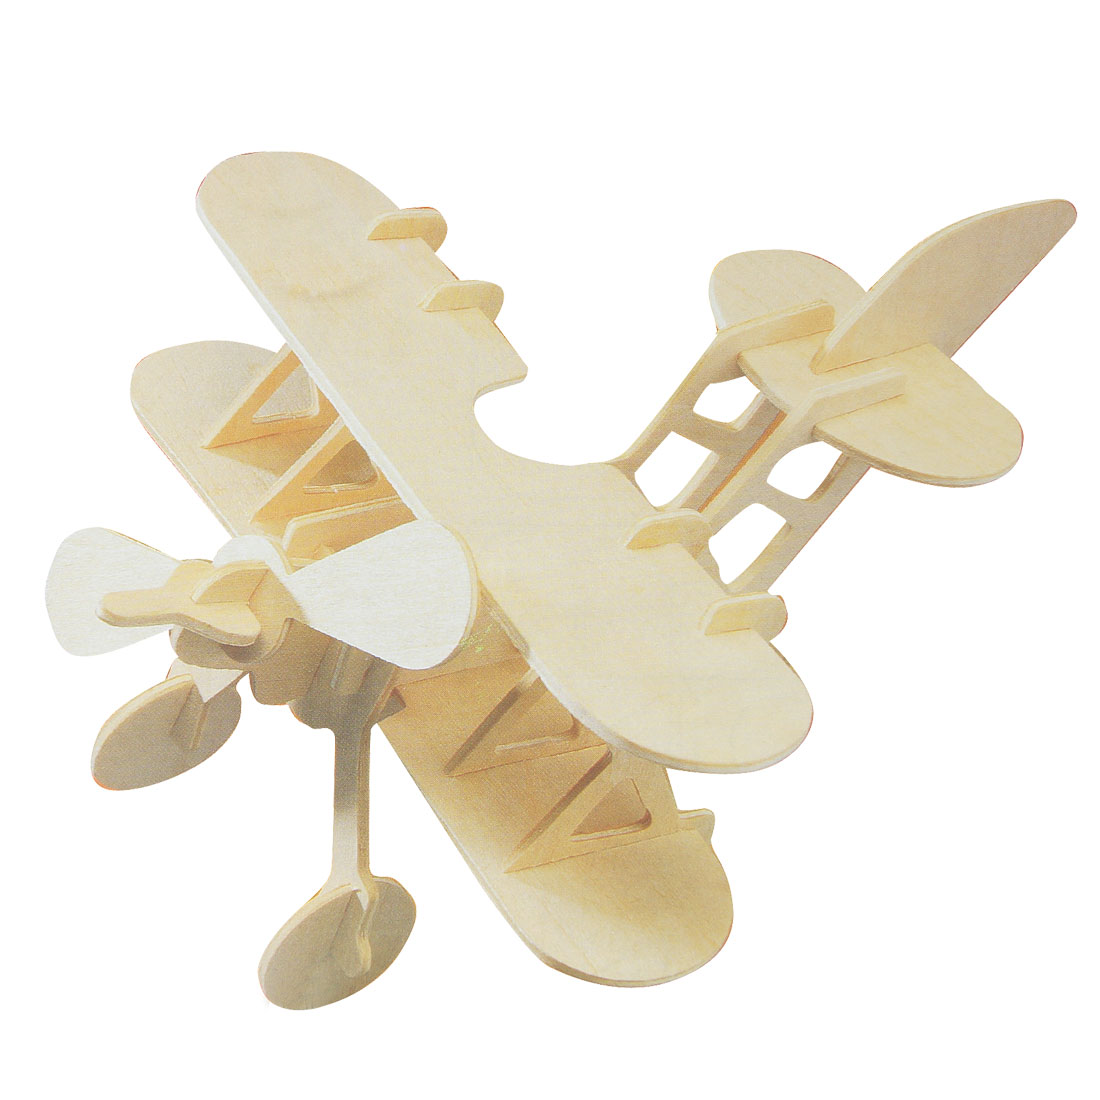 Children Wood Craft DIY 3D Bi-plane Model Construction Kit Puzzle Toy